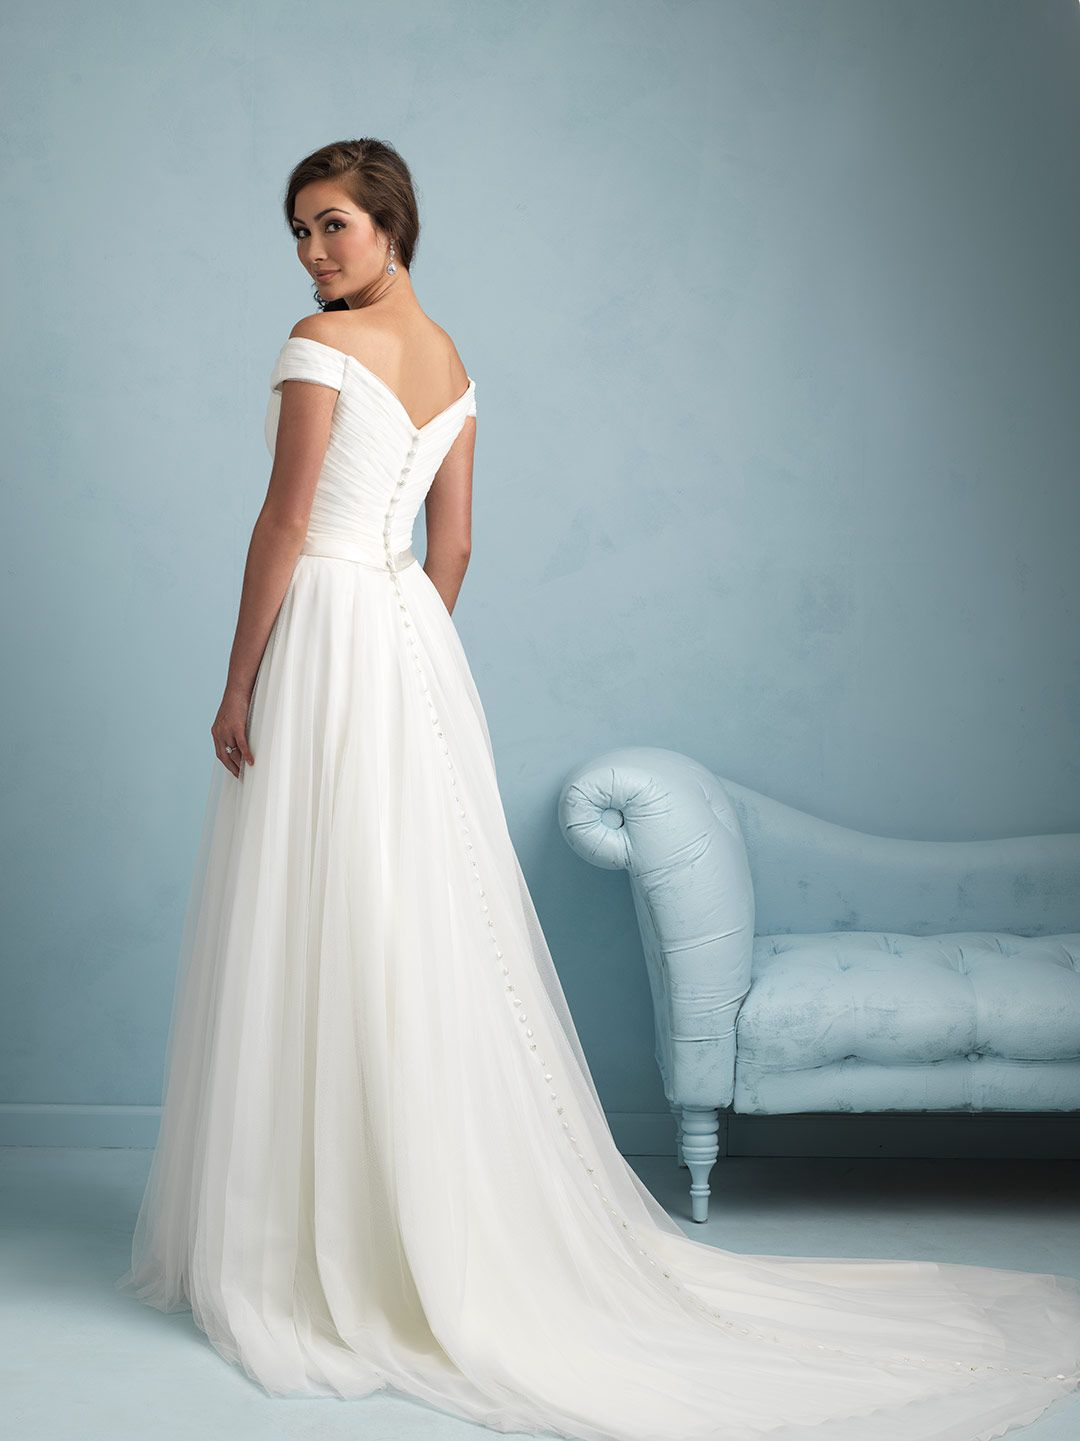 mainimage Allure Bridal | Everything for weddings | Pinterest ...